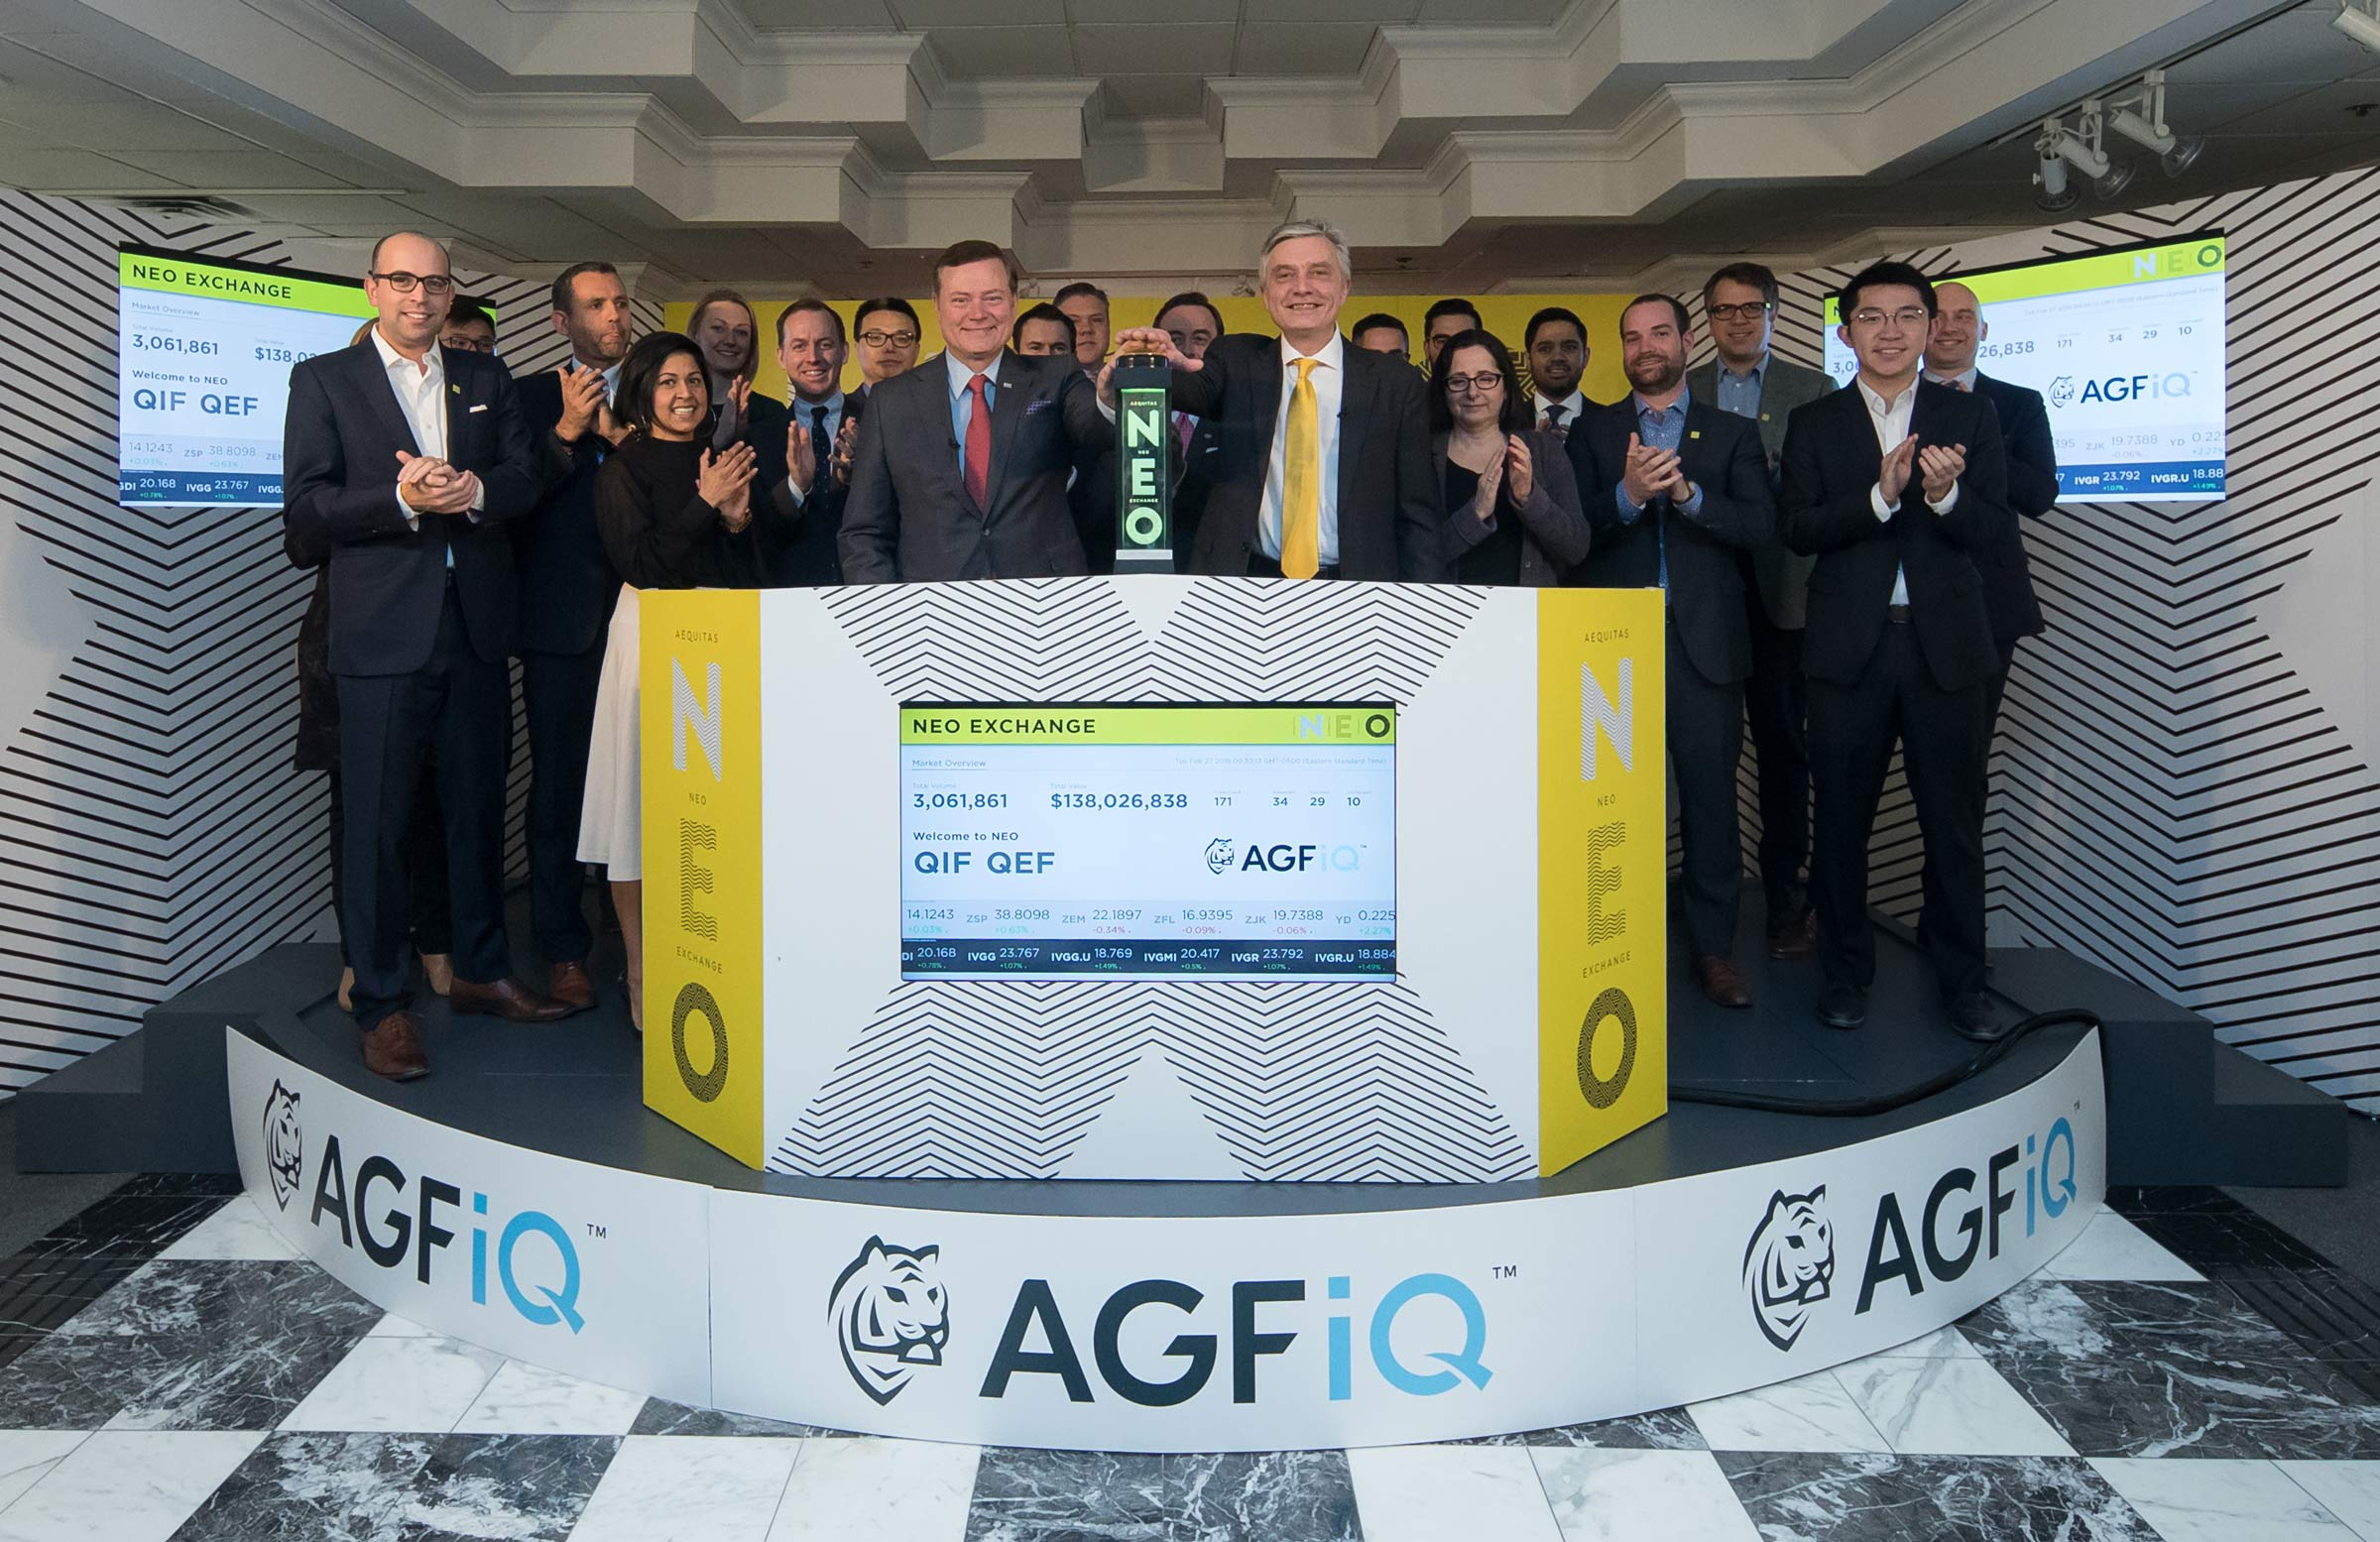 AGF Opens the NEO Exchange